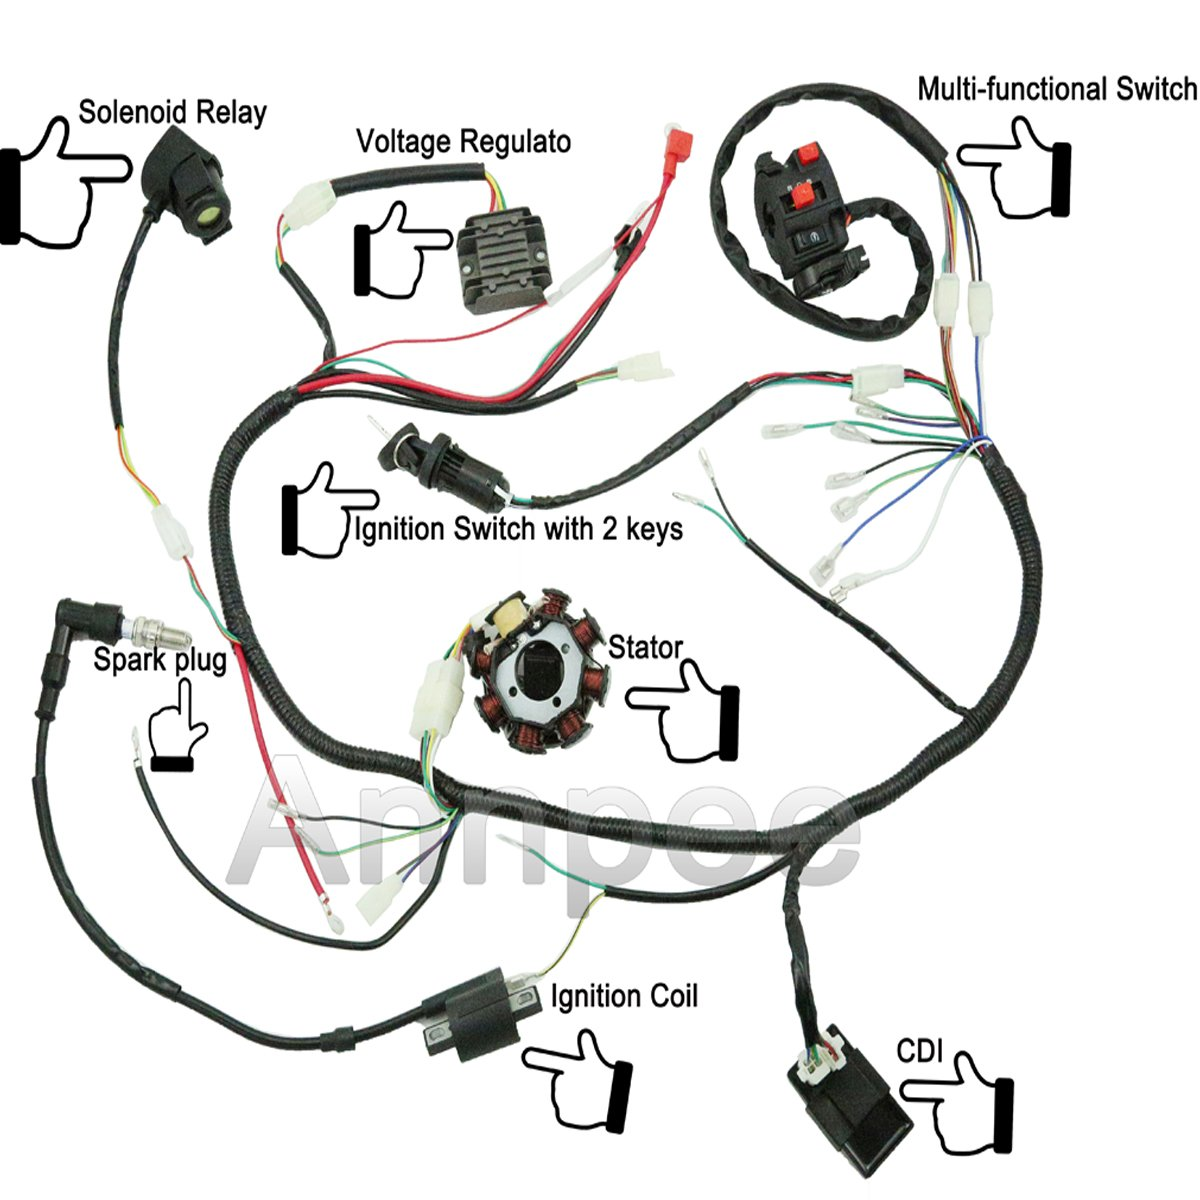 Amazon.com: JIKAN Ann Complete Wiring Harness kit Wire loom ... on 55 chevy headlight switch diagram, 2-way switch diagram, 4 wire motor diagram, 4 wire fan diagram, 3-way switch diagram, switch connection diagram, 3 speed fan switch diagram, 4-way circuit diagram, 4 wire pull, 4-way switch diagram,